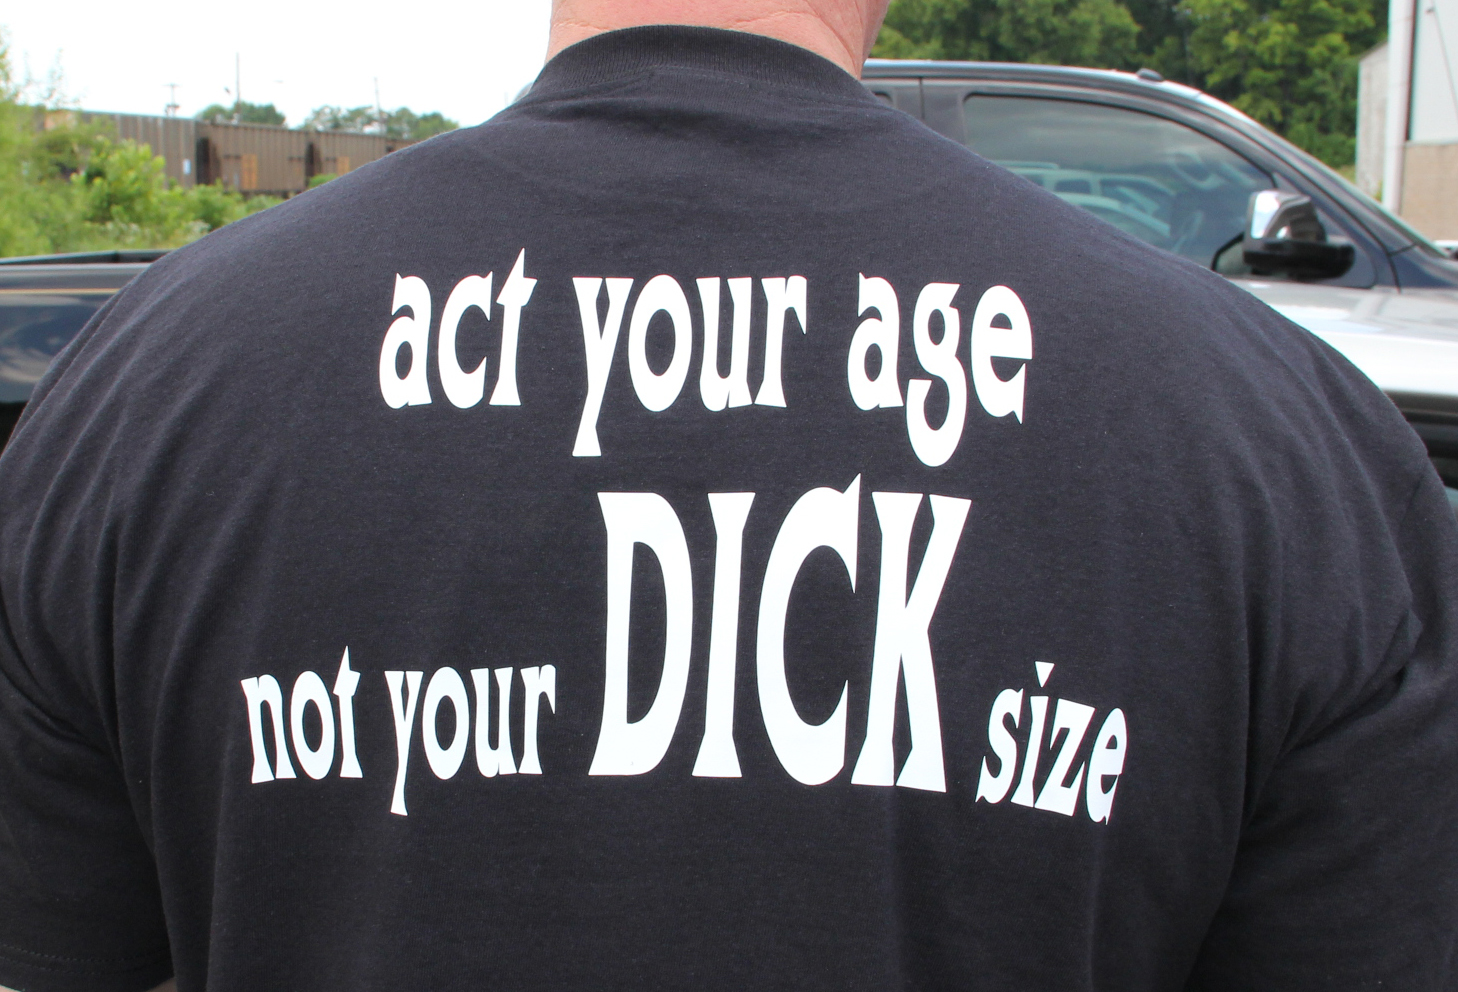 act-your-age-not-your-dick-size.jpg